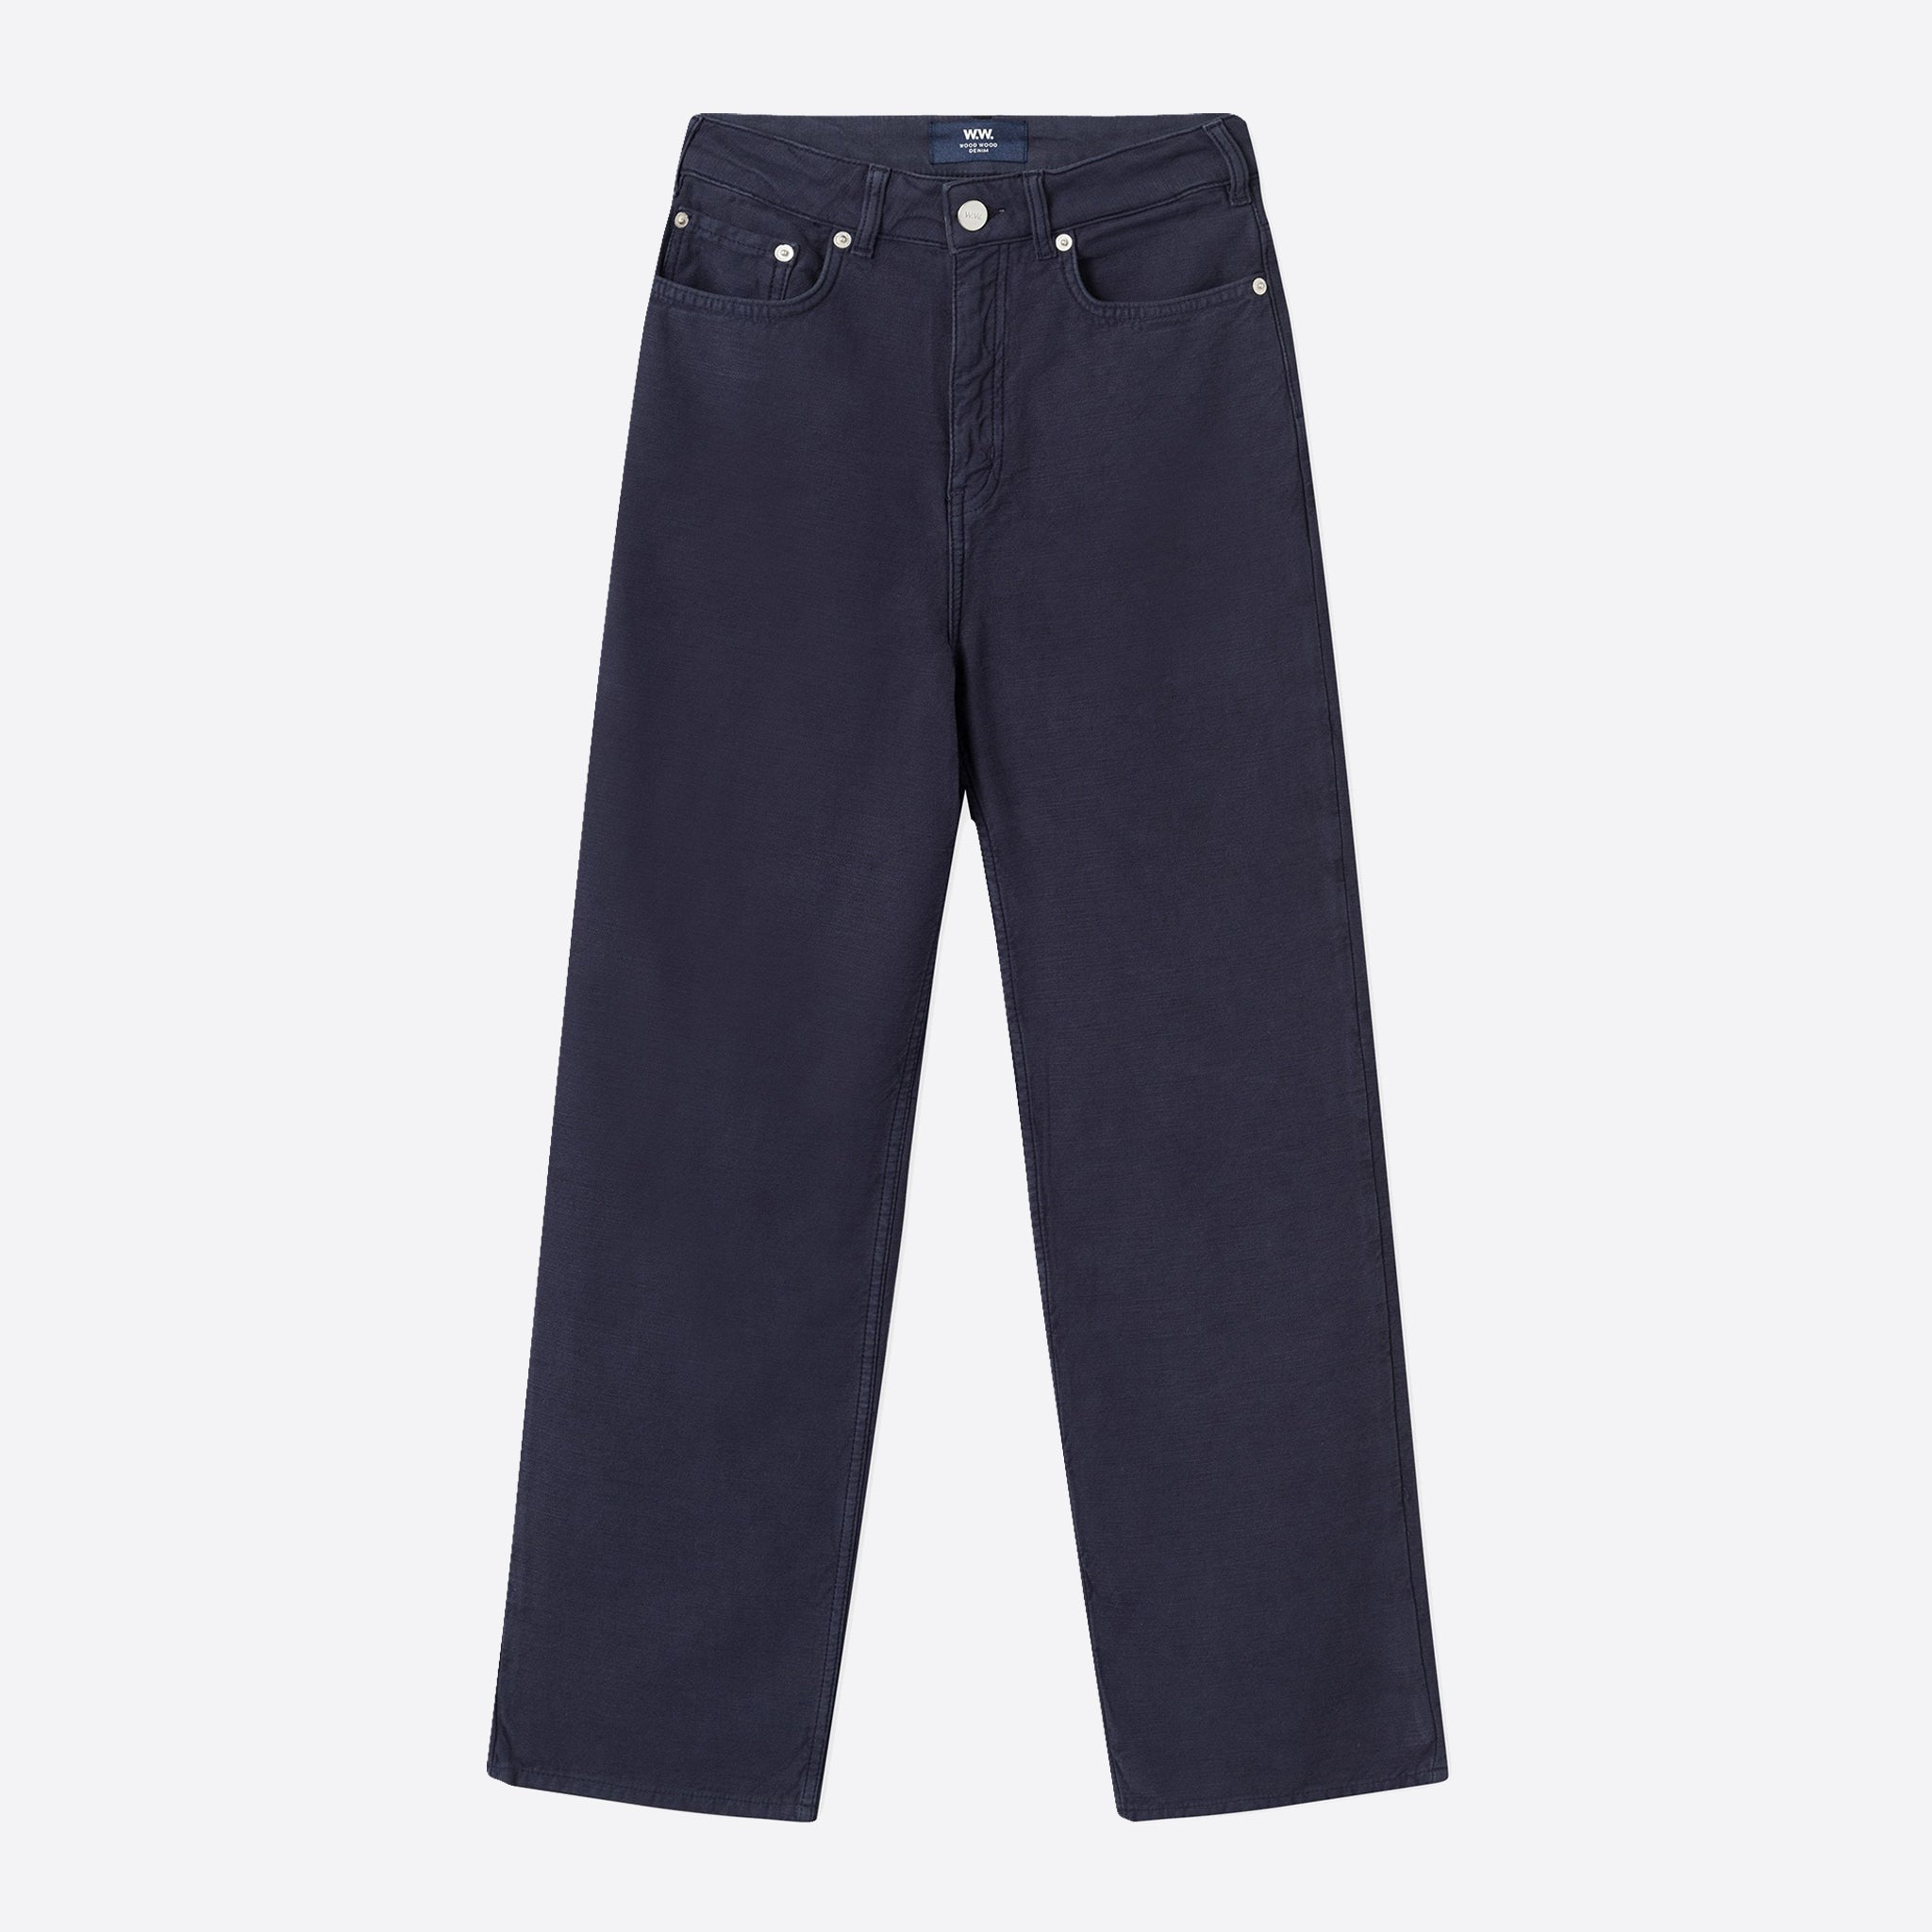 Wood Wood Ilo Jeans in Navy